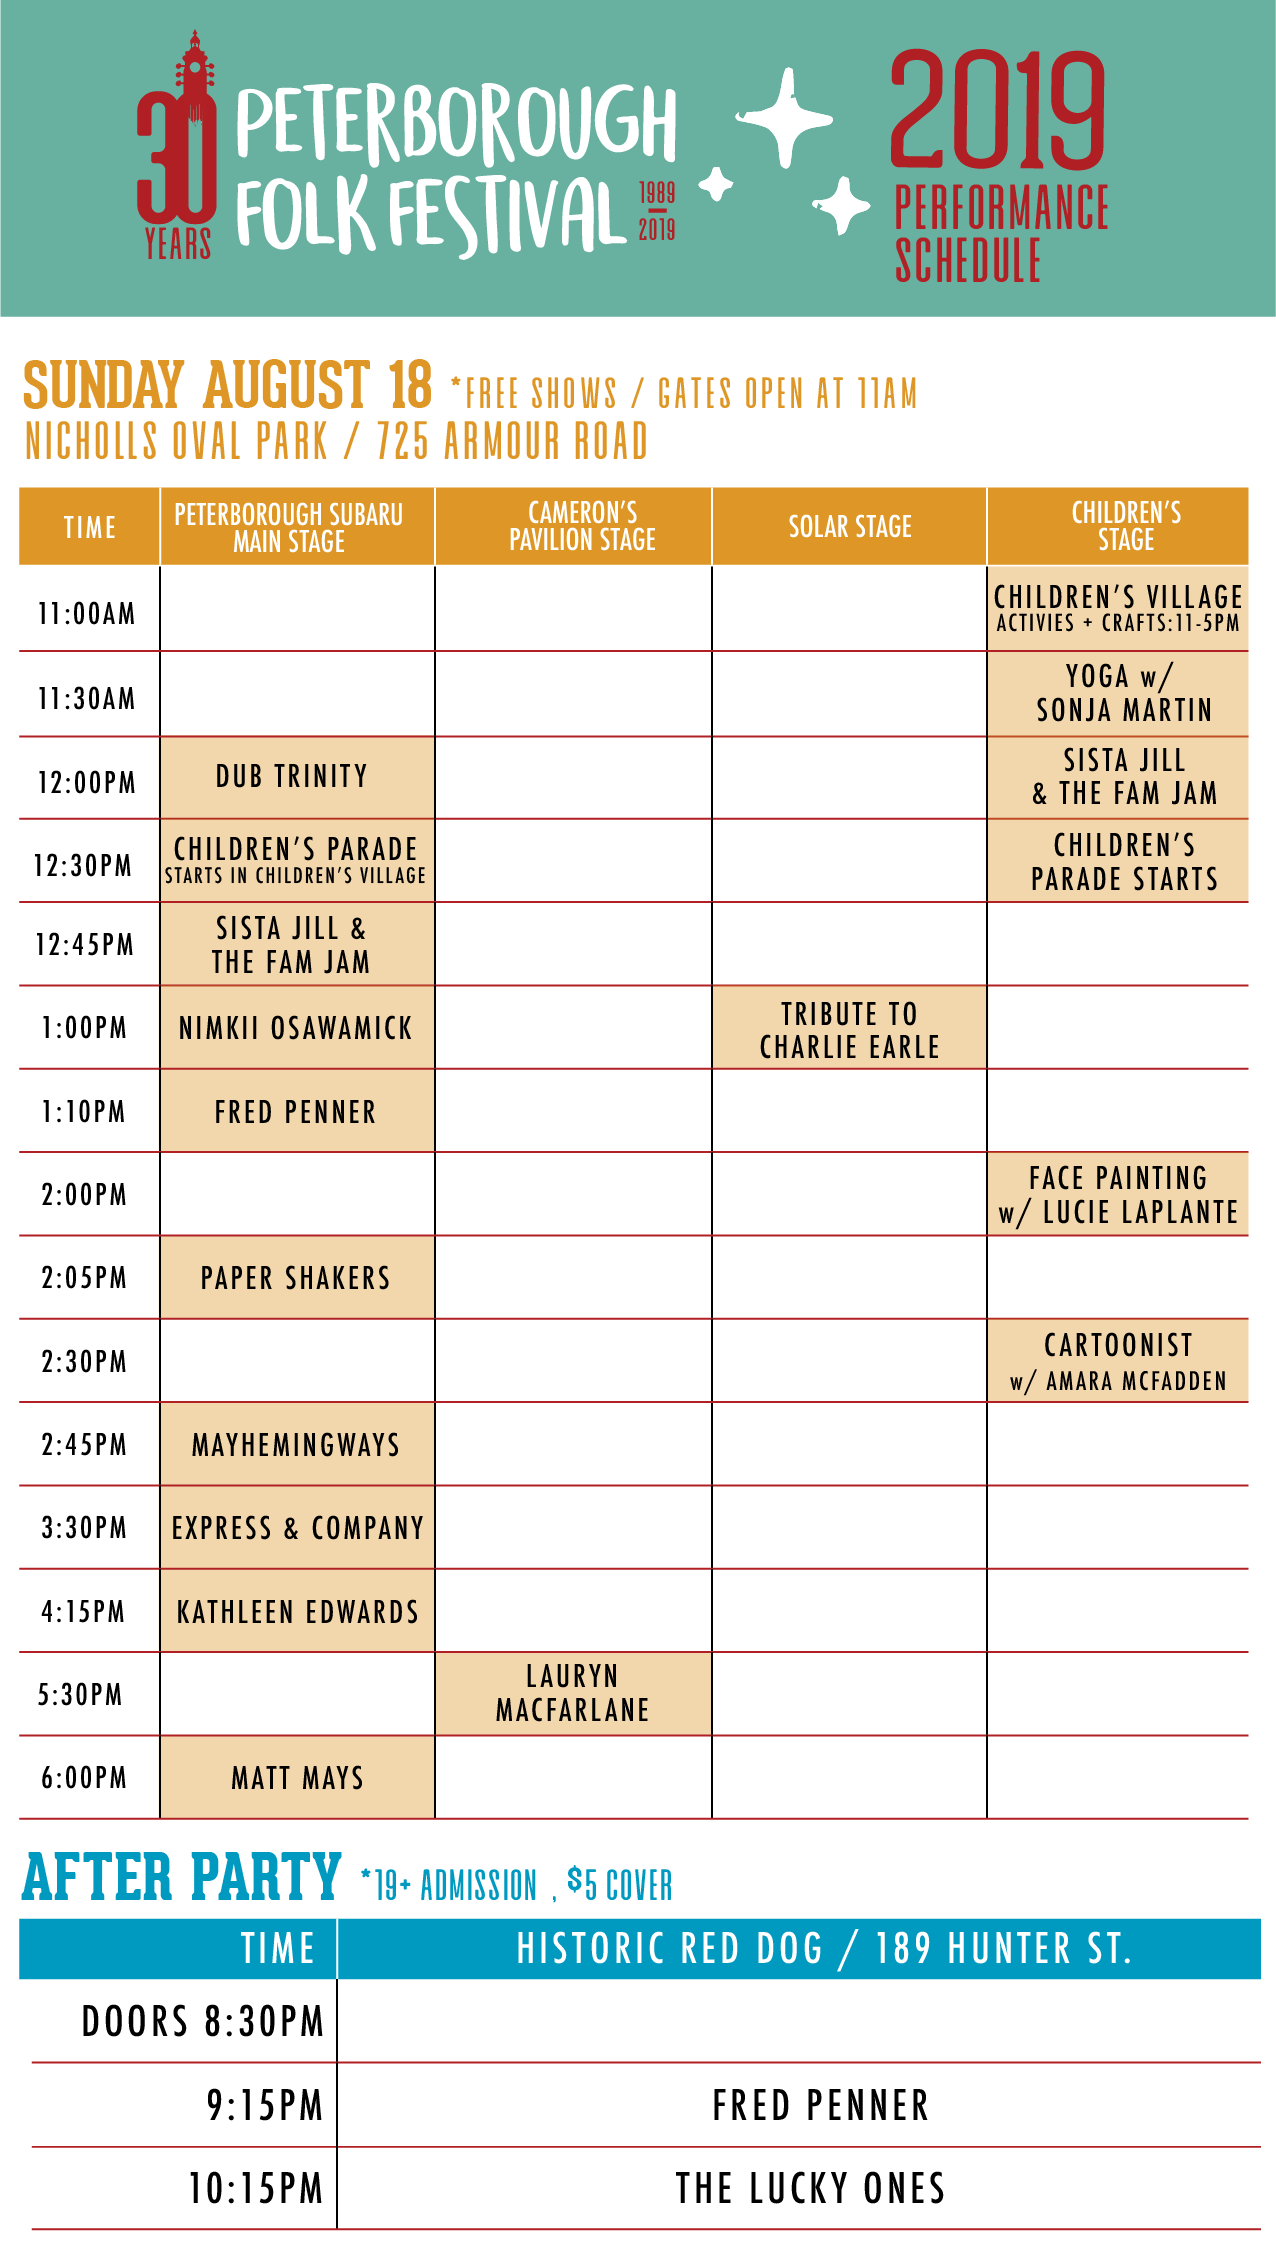 schedule_sunday-02-02-02.png